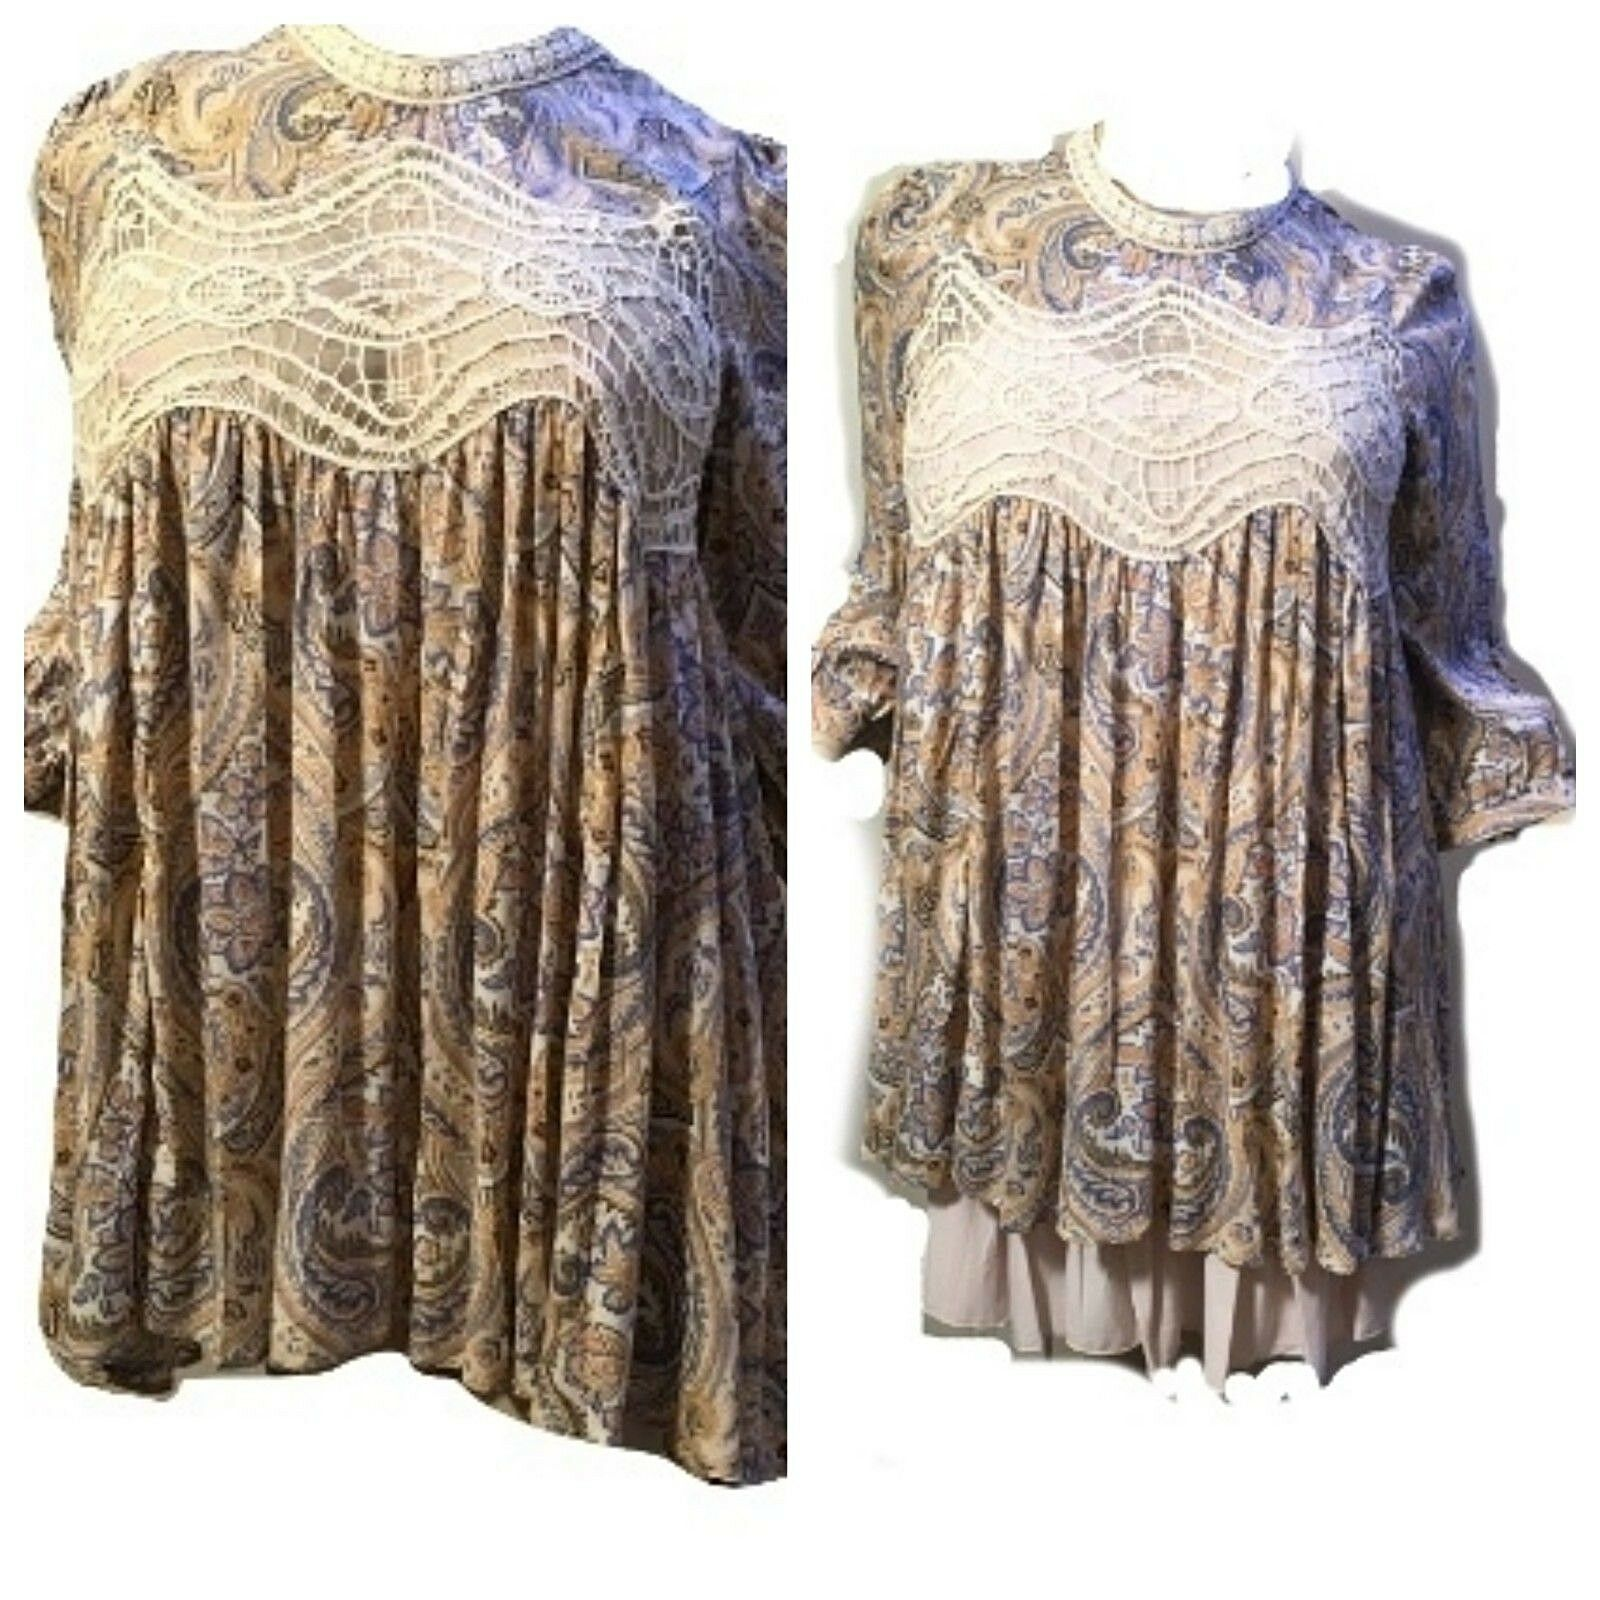 JODIFL Womens Size L Boho Embroidered Lace Bohemian 3 4 Sleeve Top Blouse Tunic